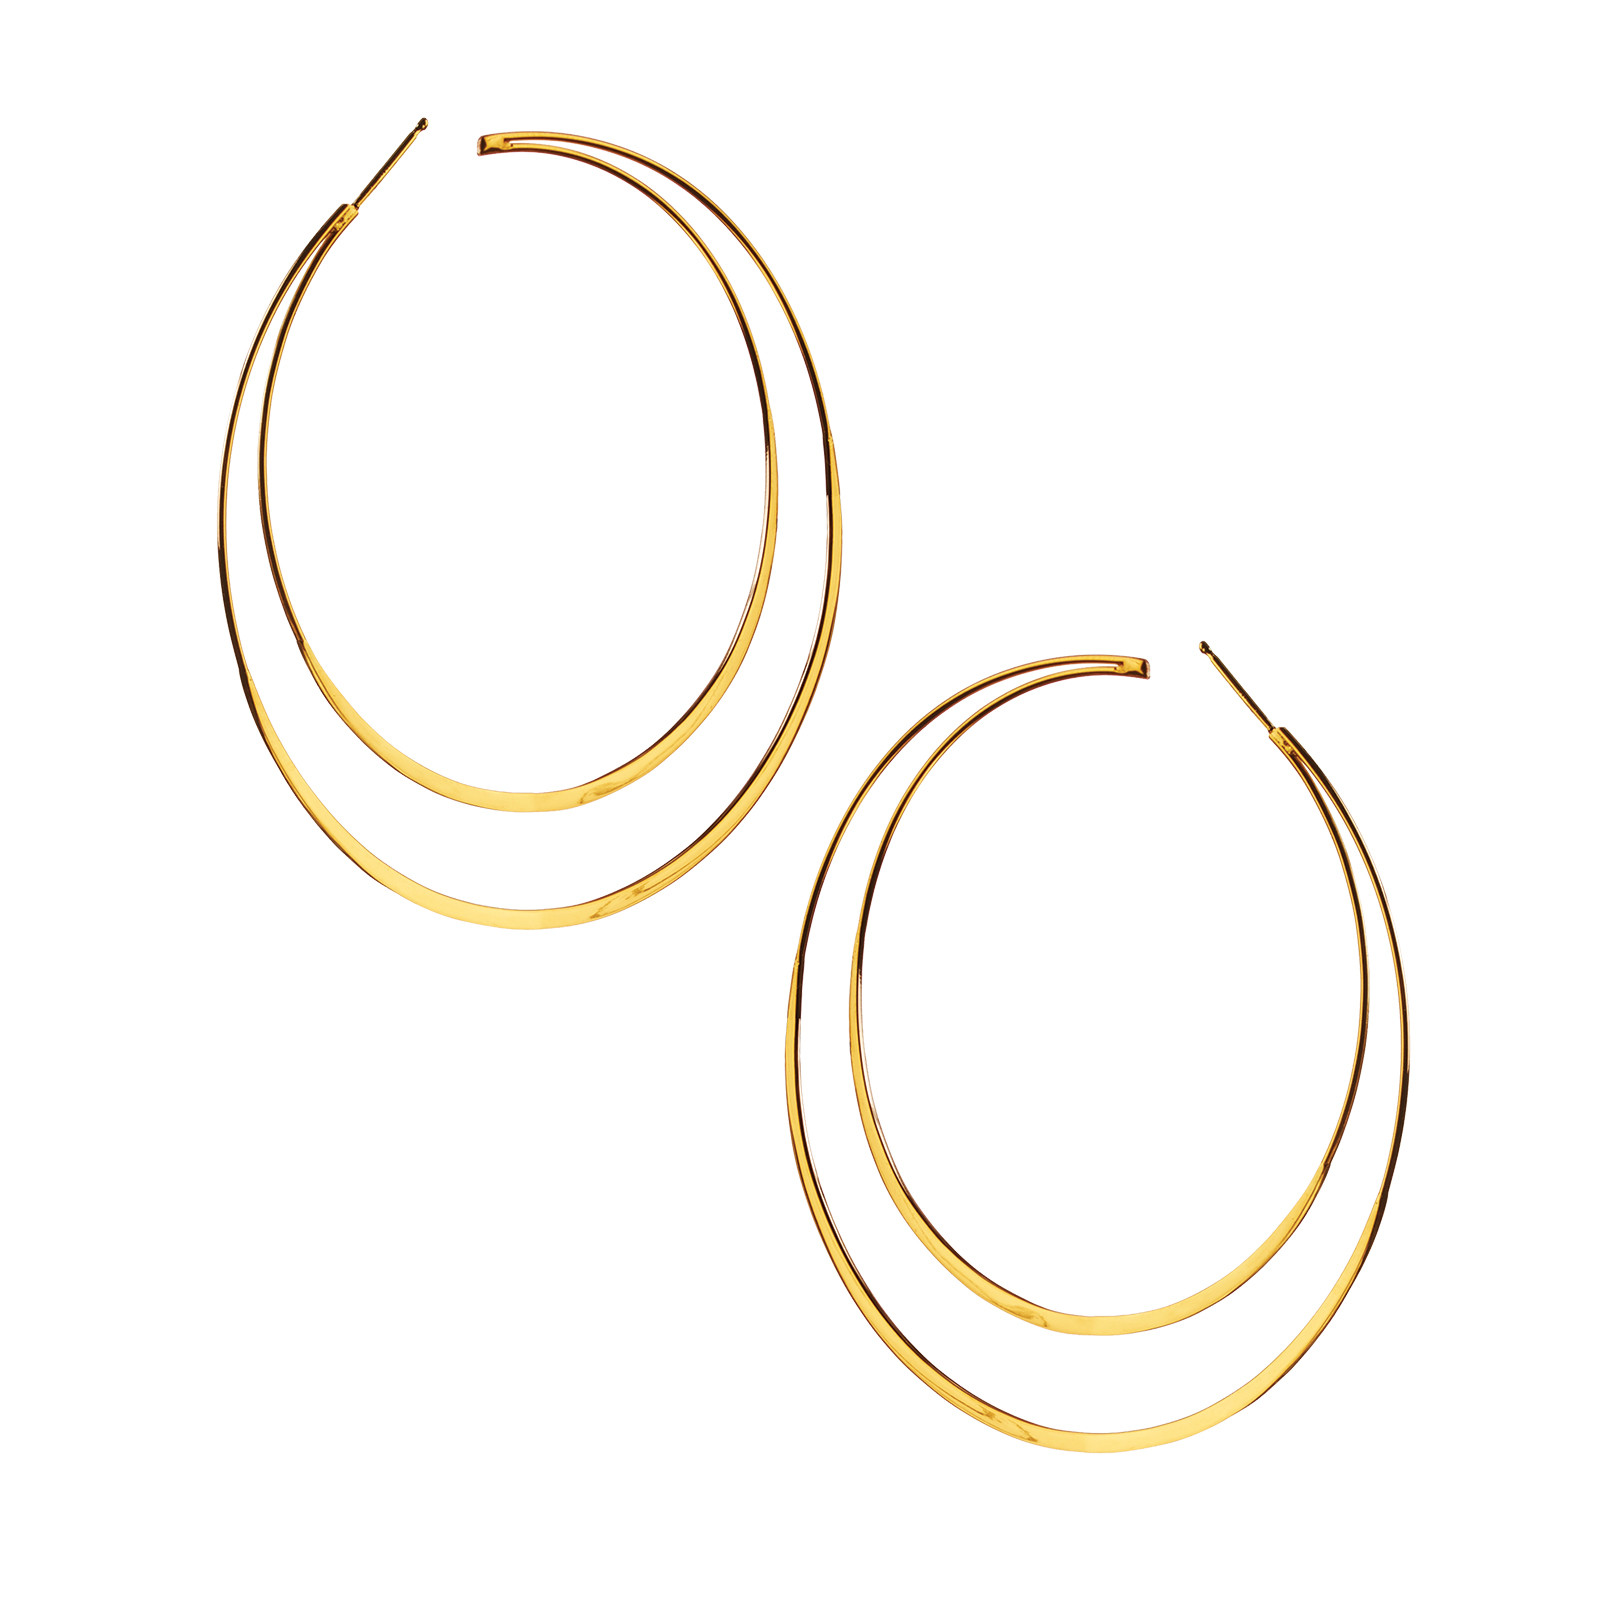 New Lana Jewelry Double Hoop Earrings